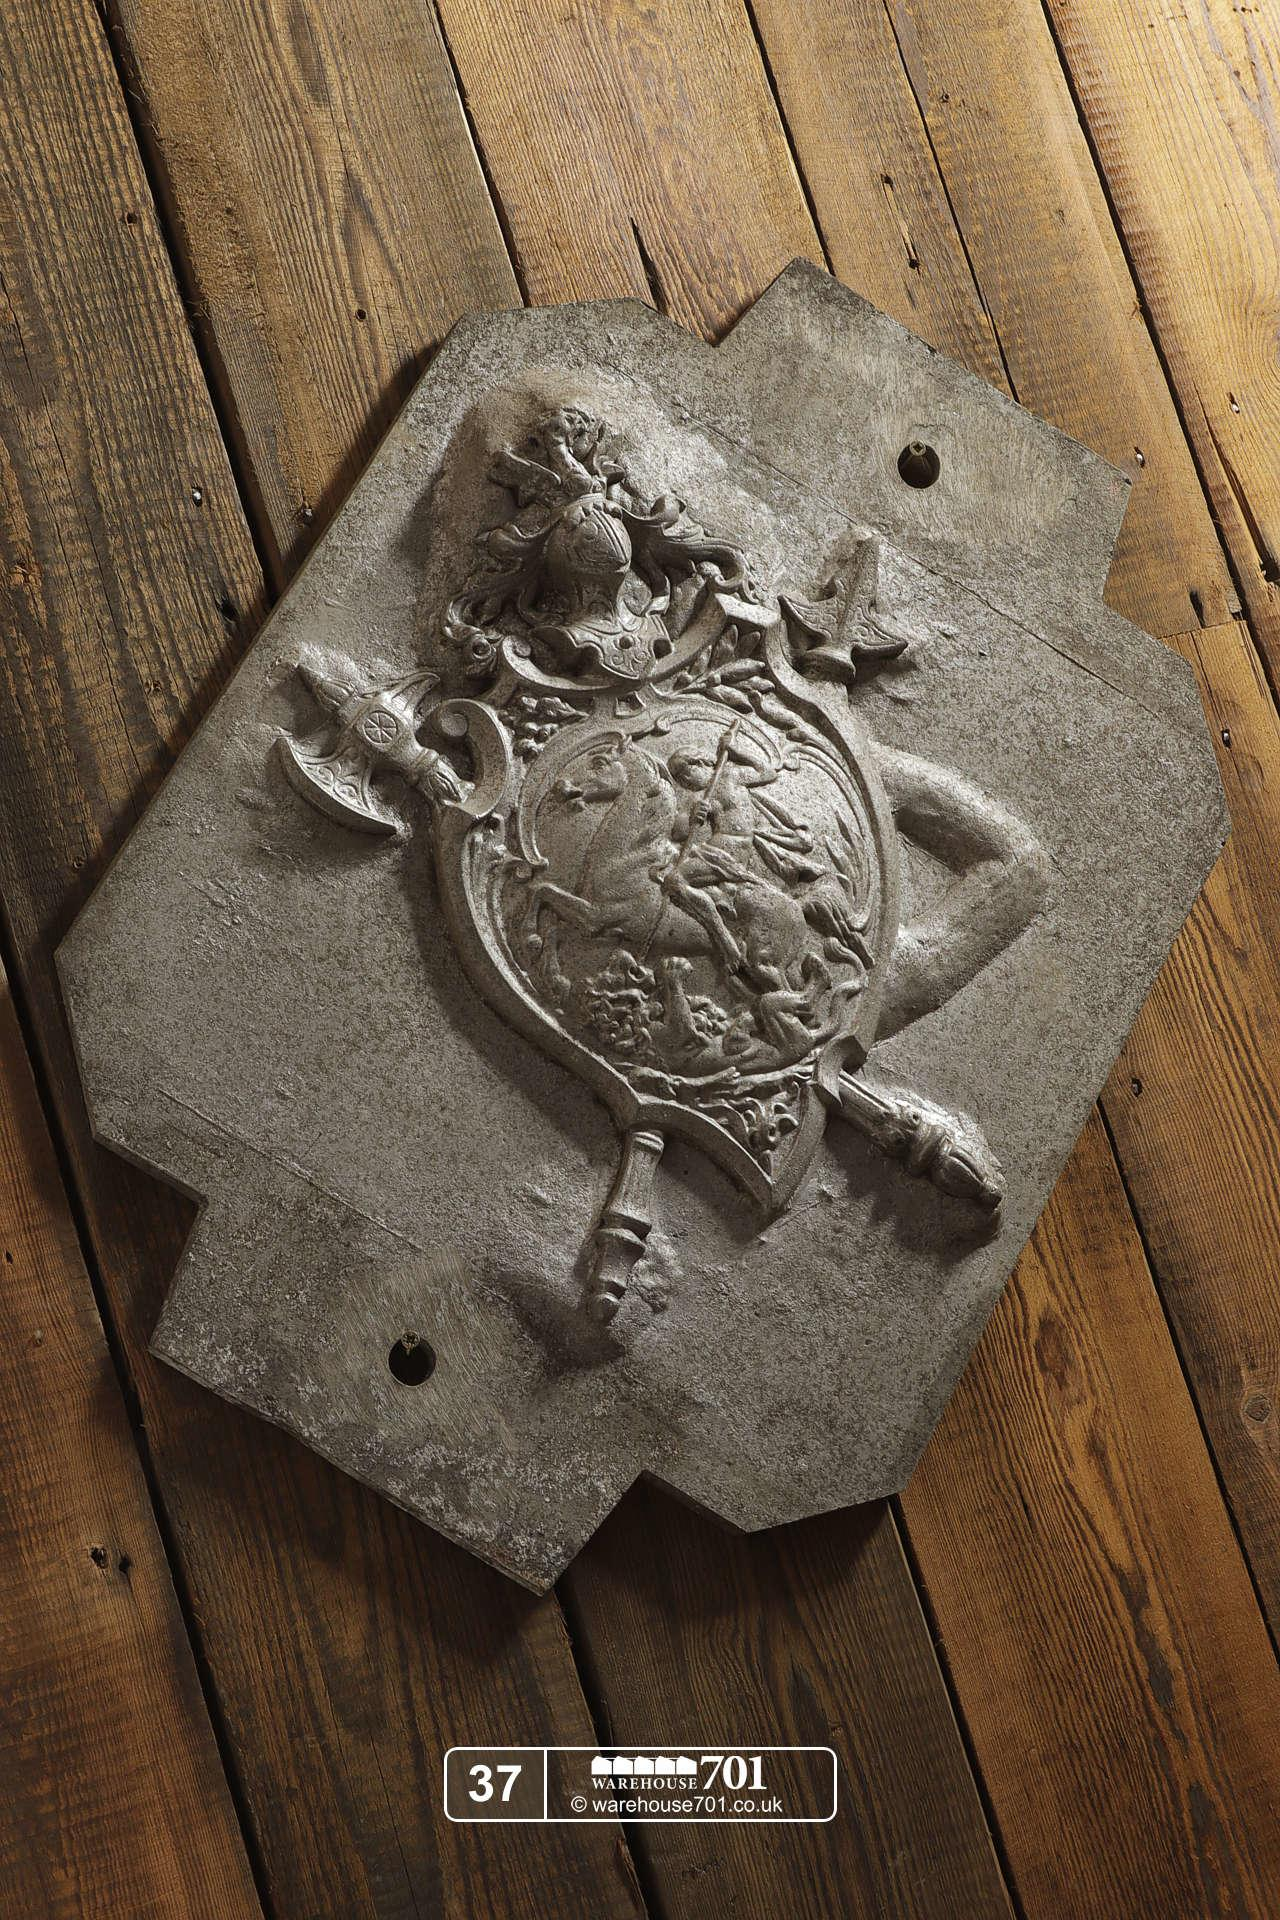 Aluminium Foundry Castings of Heraldic Crests (No's 35, 36, 37) for Shop, Retail and Home Display #8